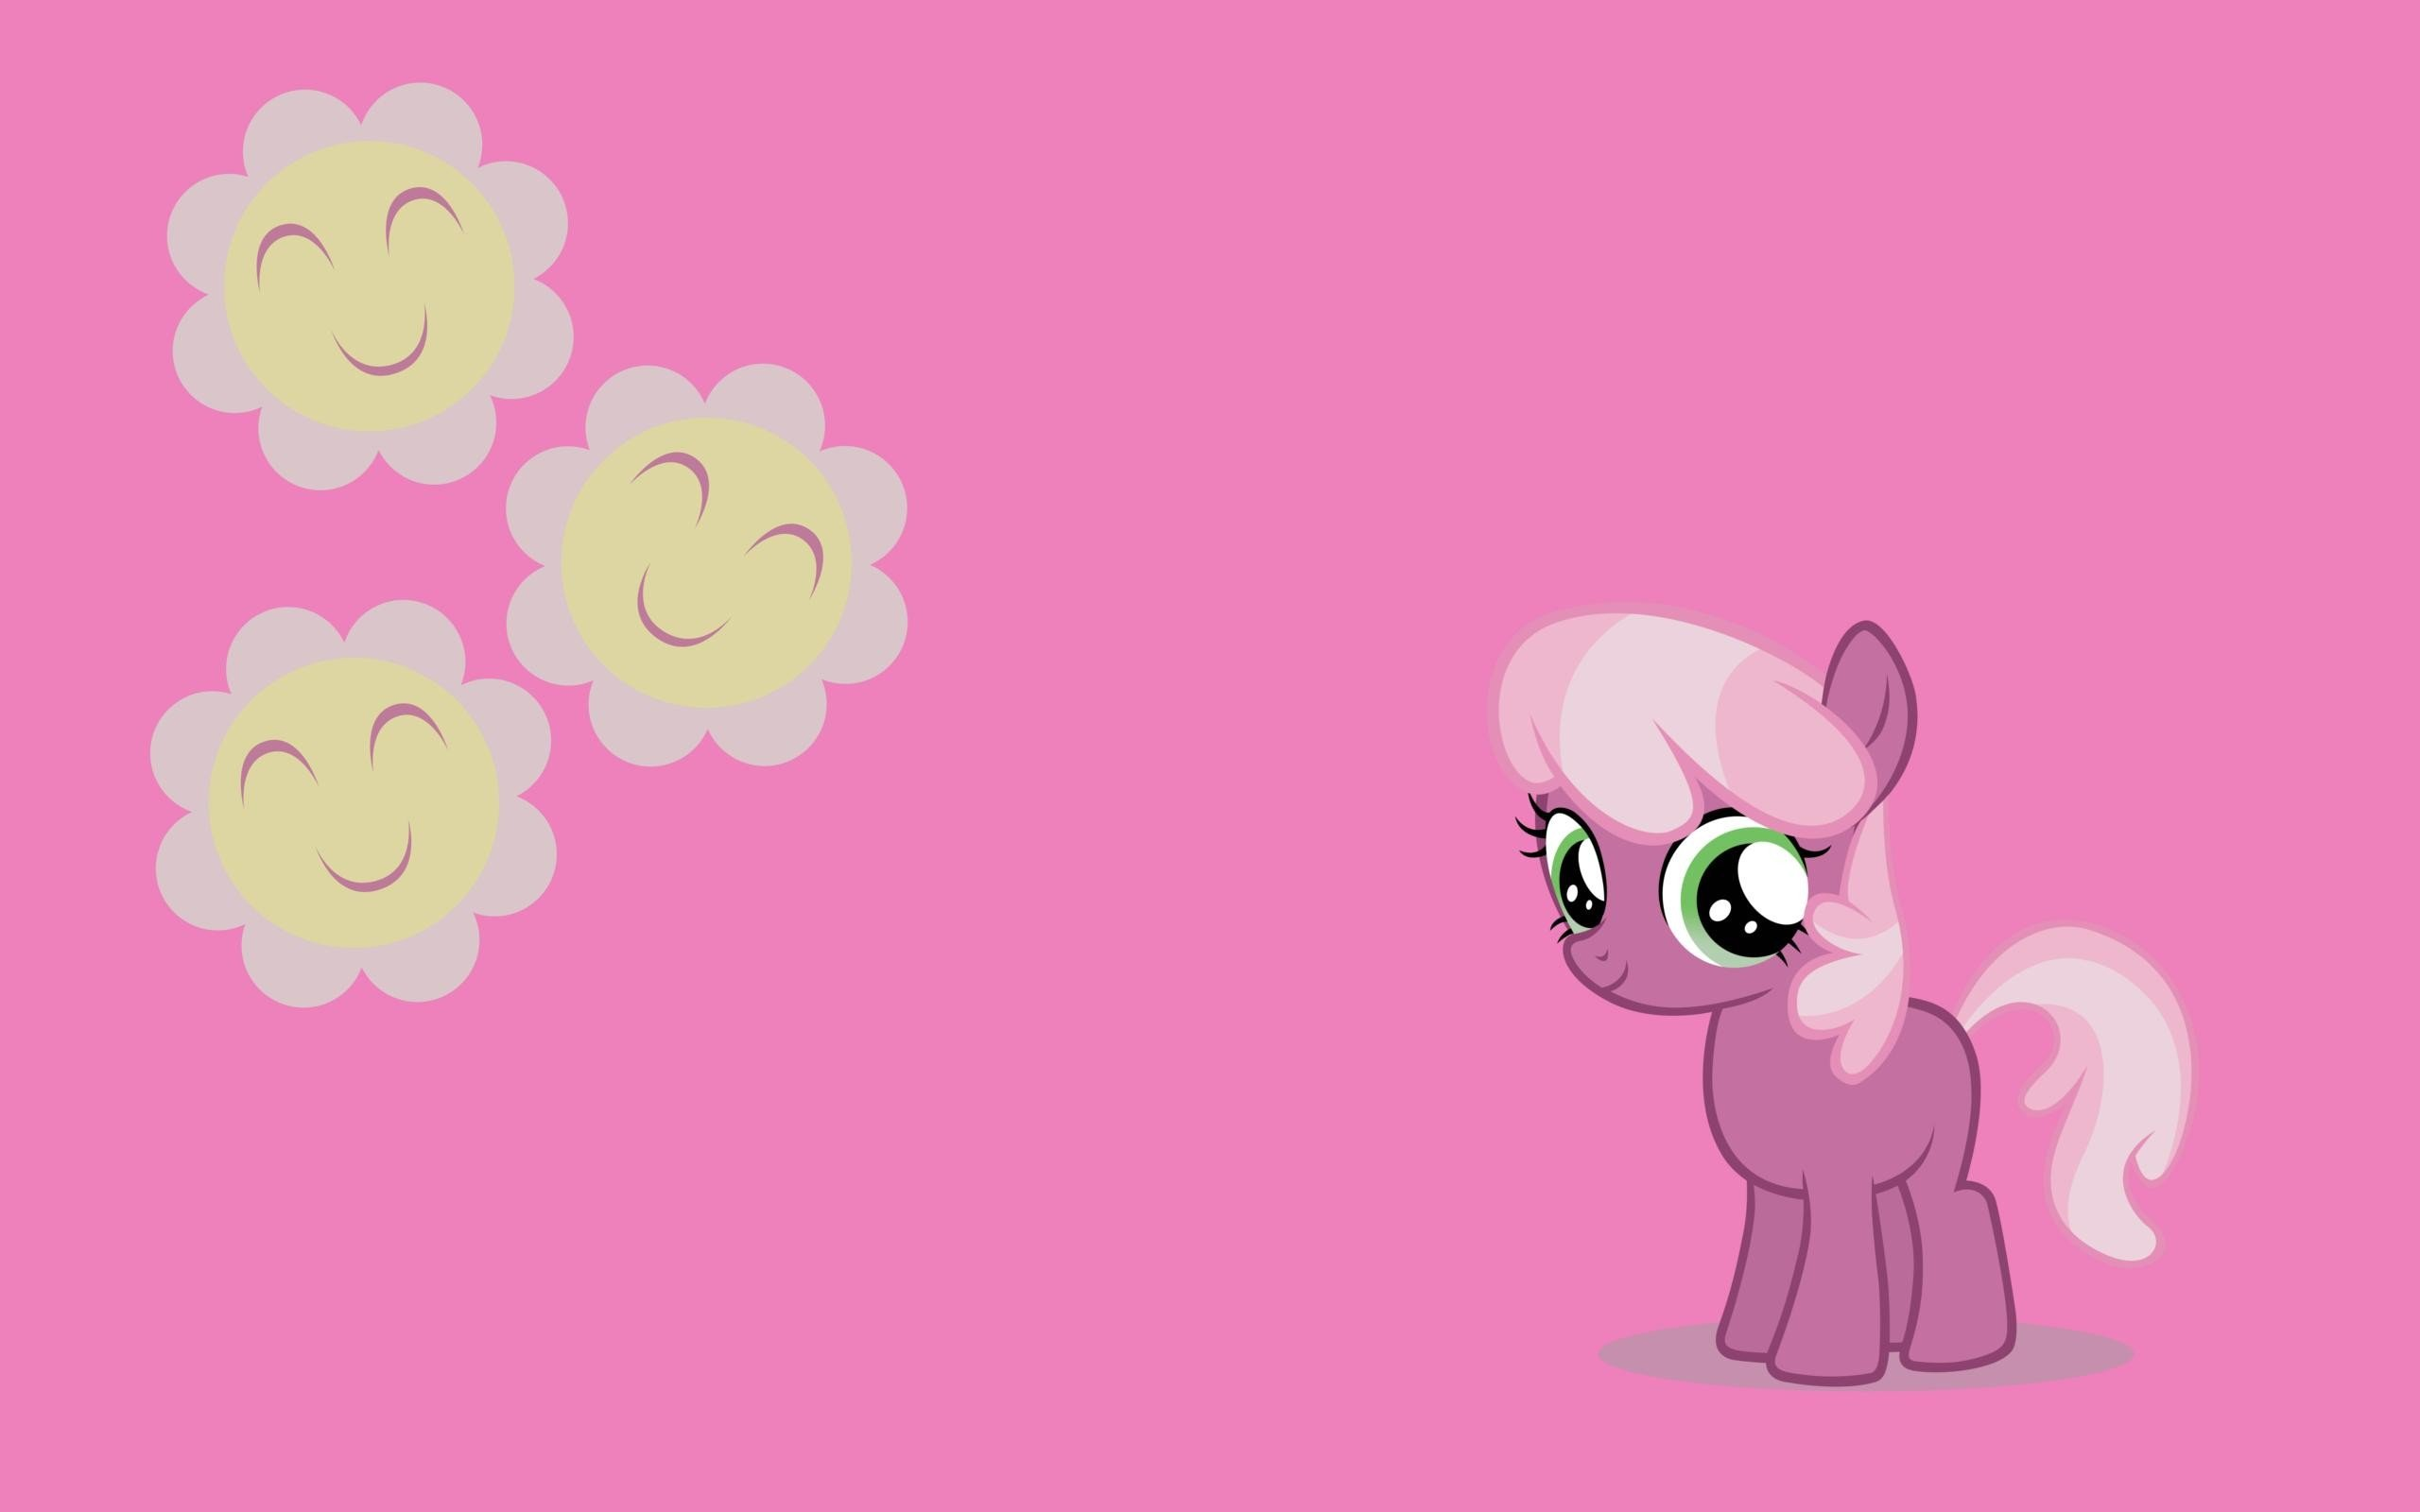 My little pony ponies cheerilee cutie mark my little pony - My little pony cutie mark wallpaper ...